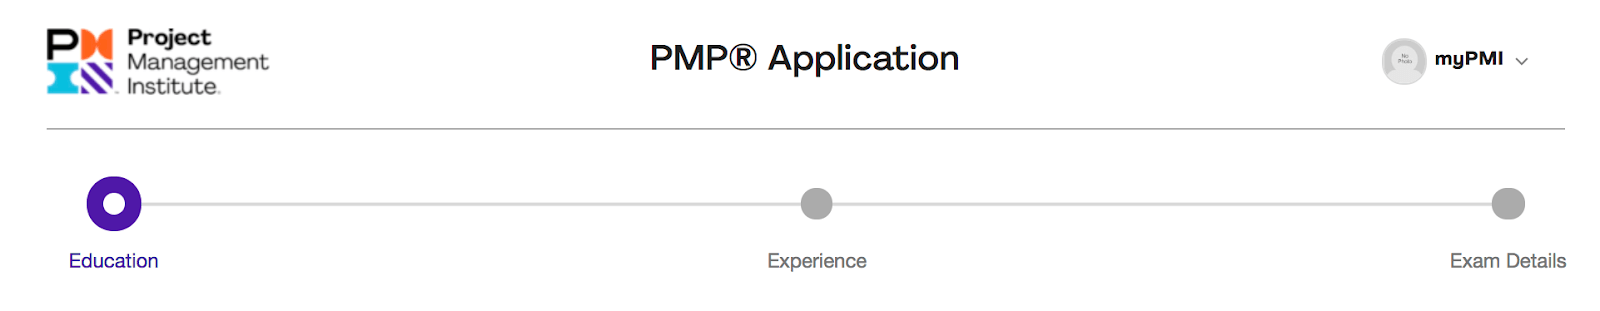 pmp application process